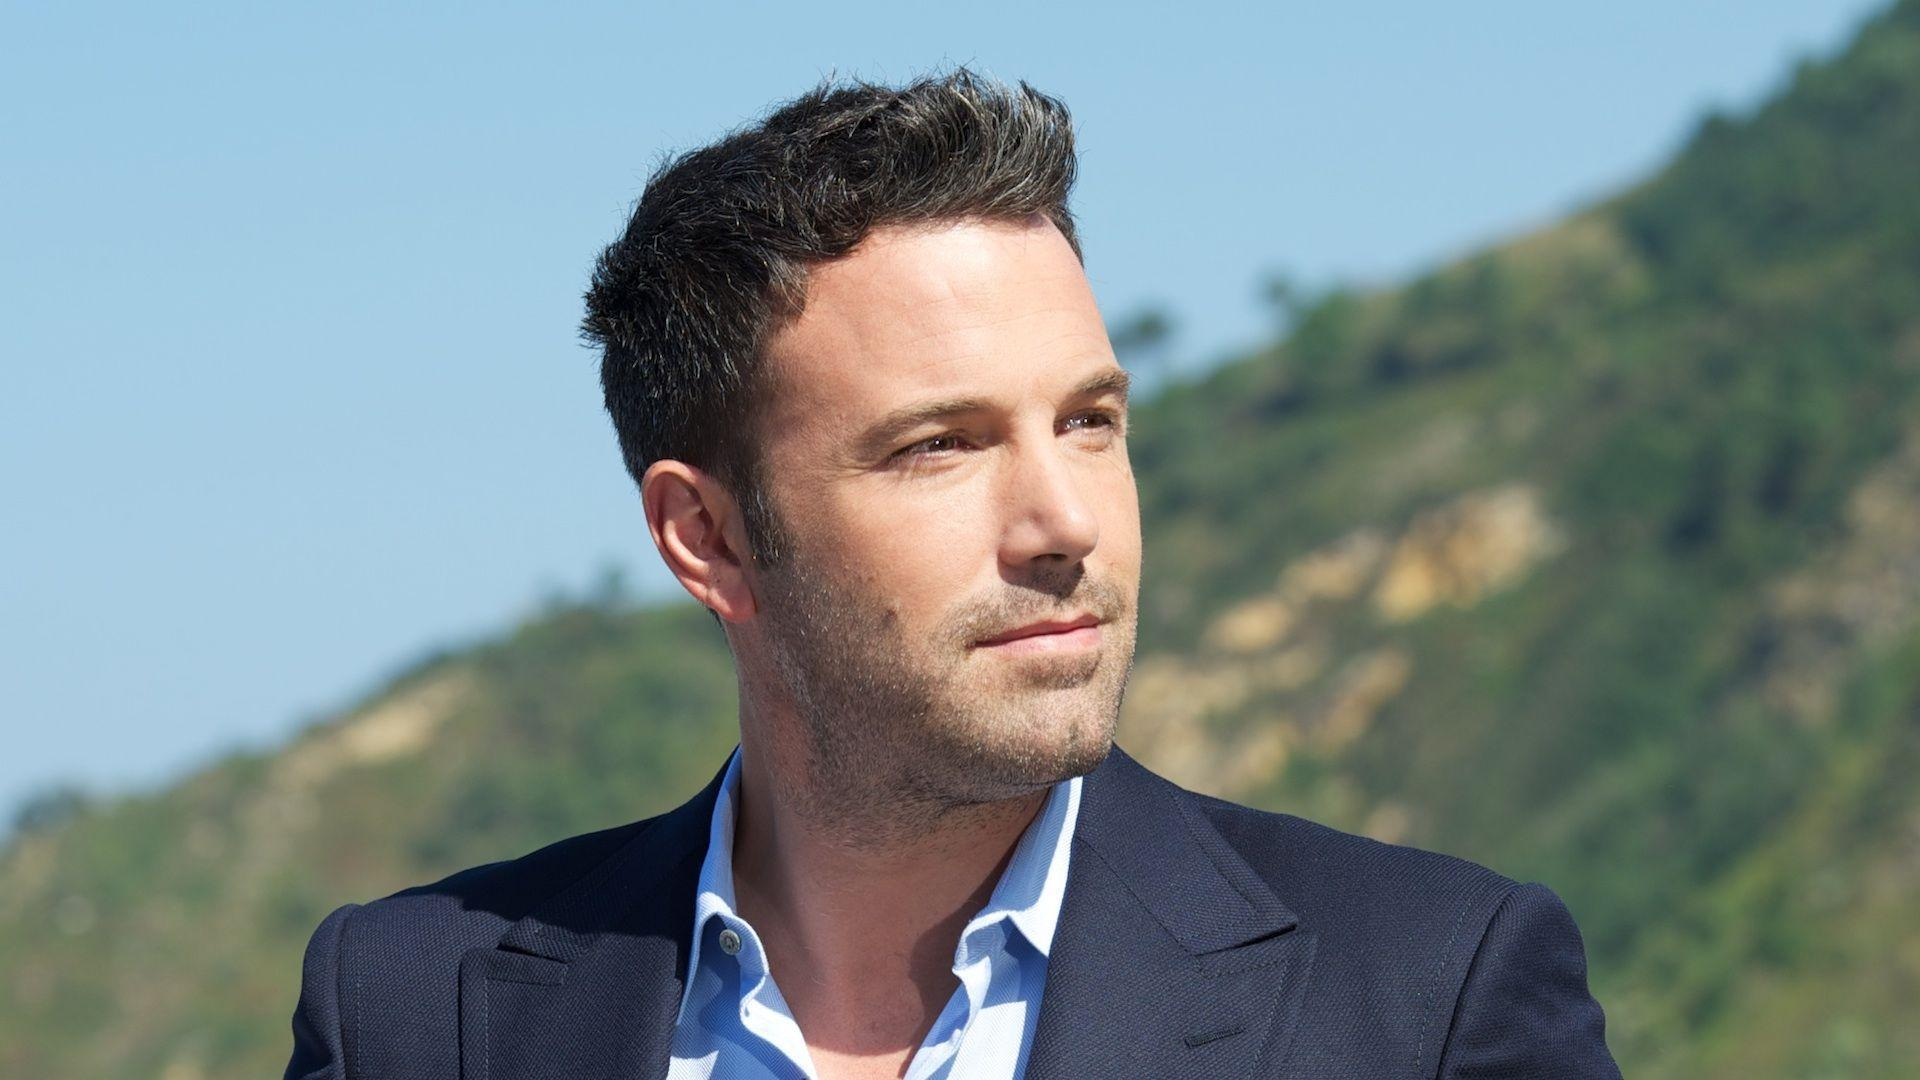 New Horror Film Casting Ben Affleck Type Actor